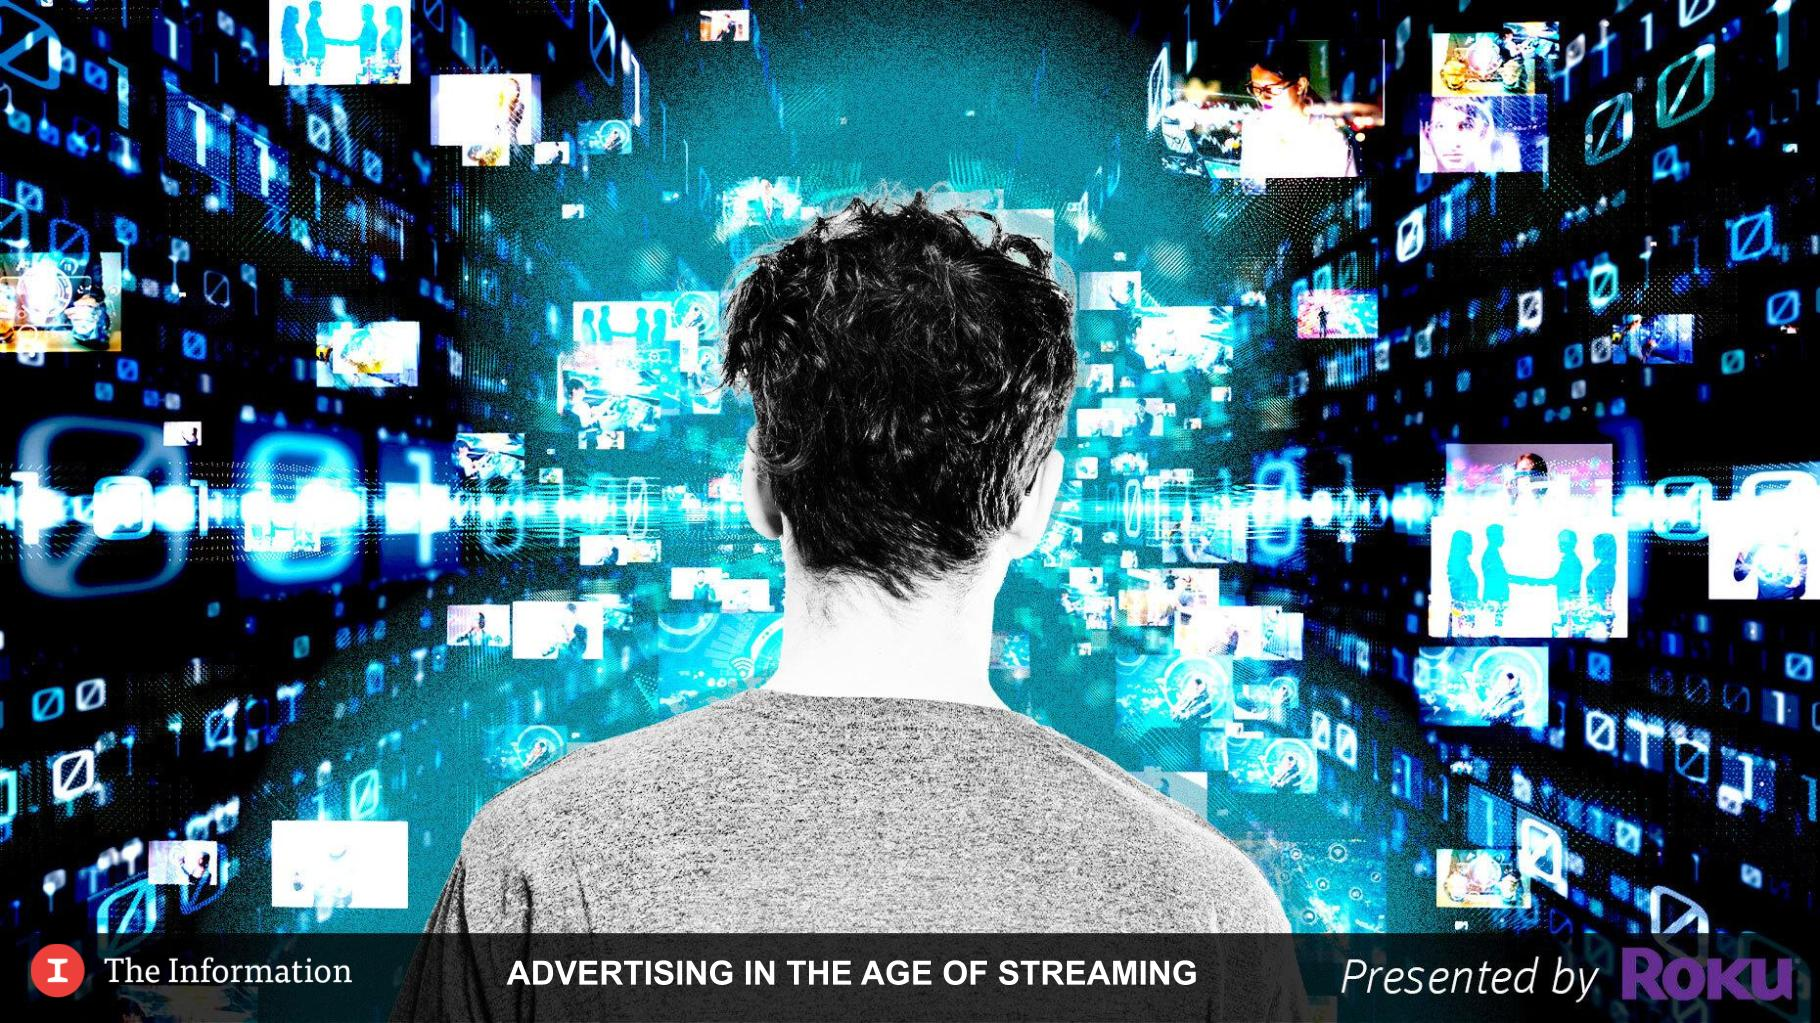 Advertising in the Age of Streaming